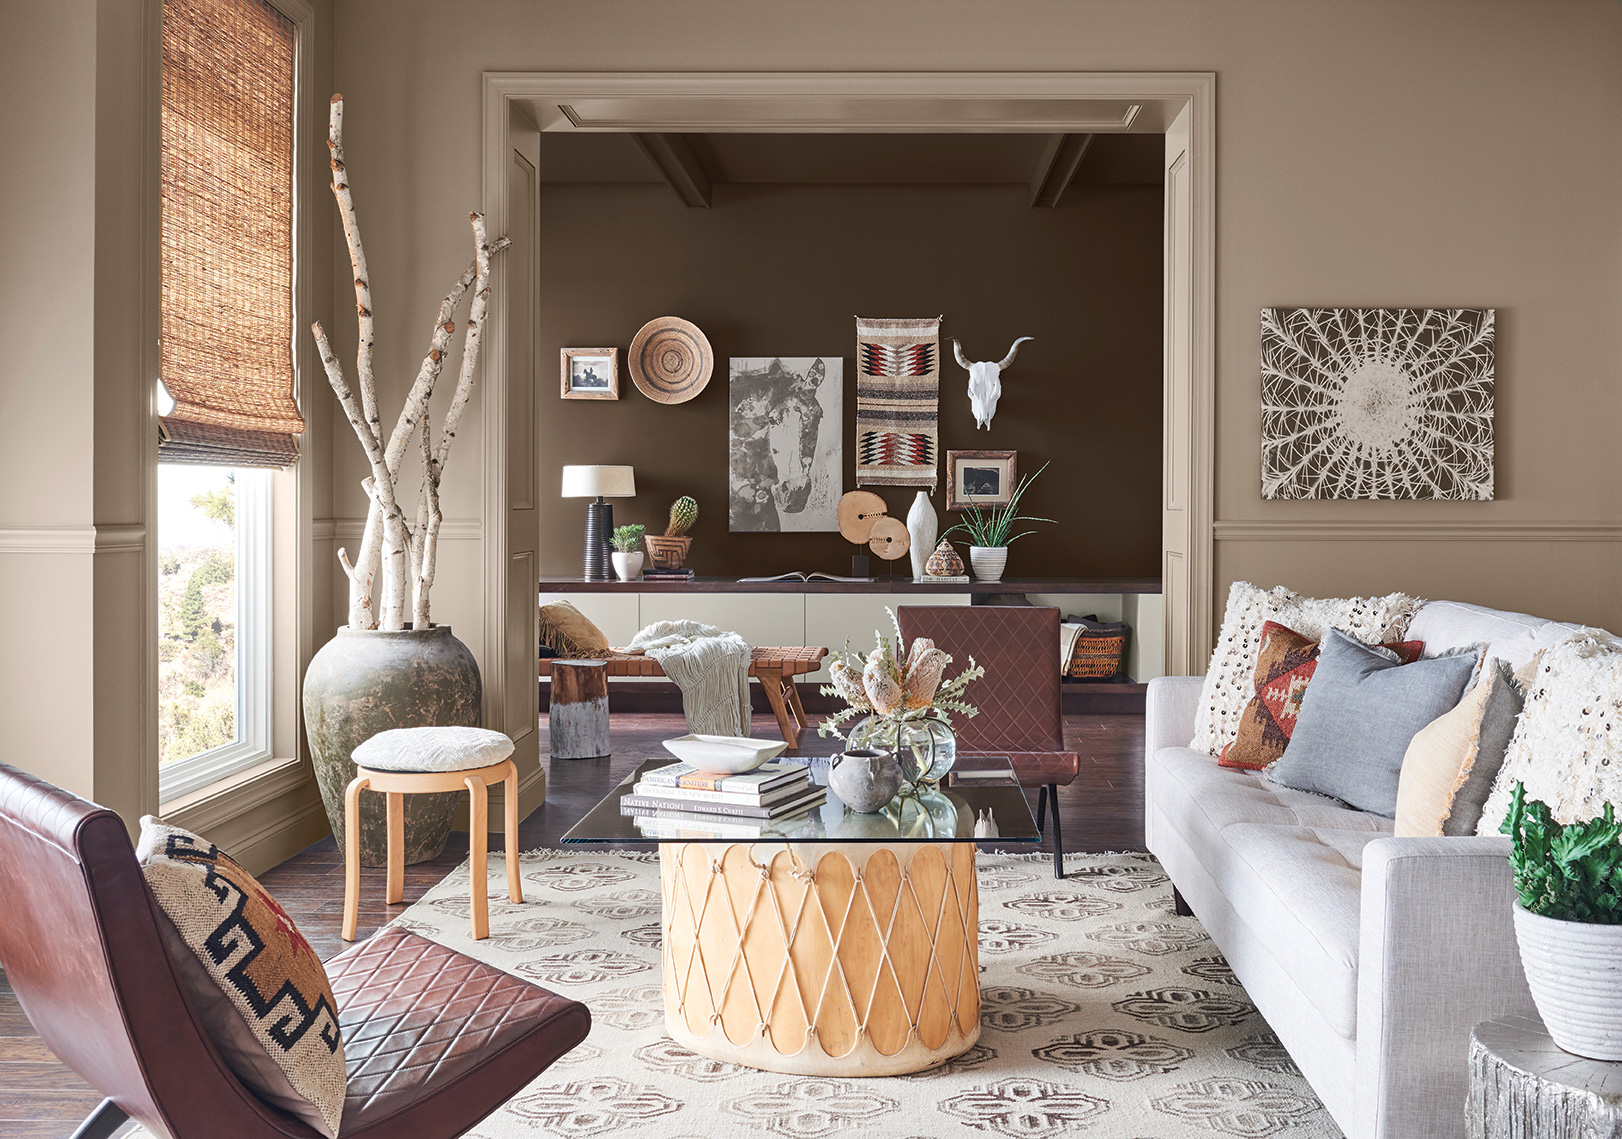 Sherwin Williams moth wing paint dark clove paint desert style southwestern style